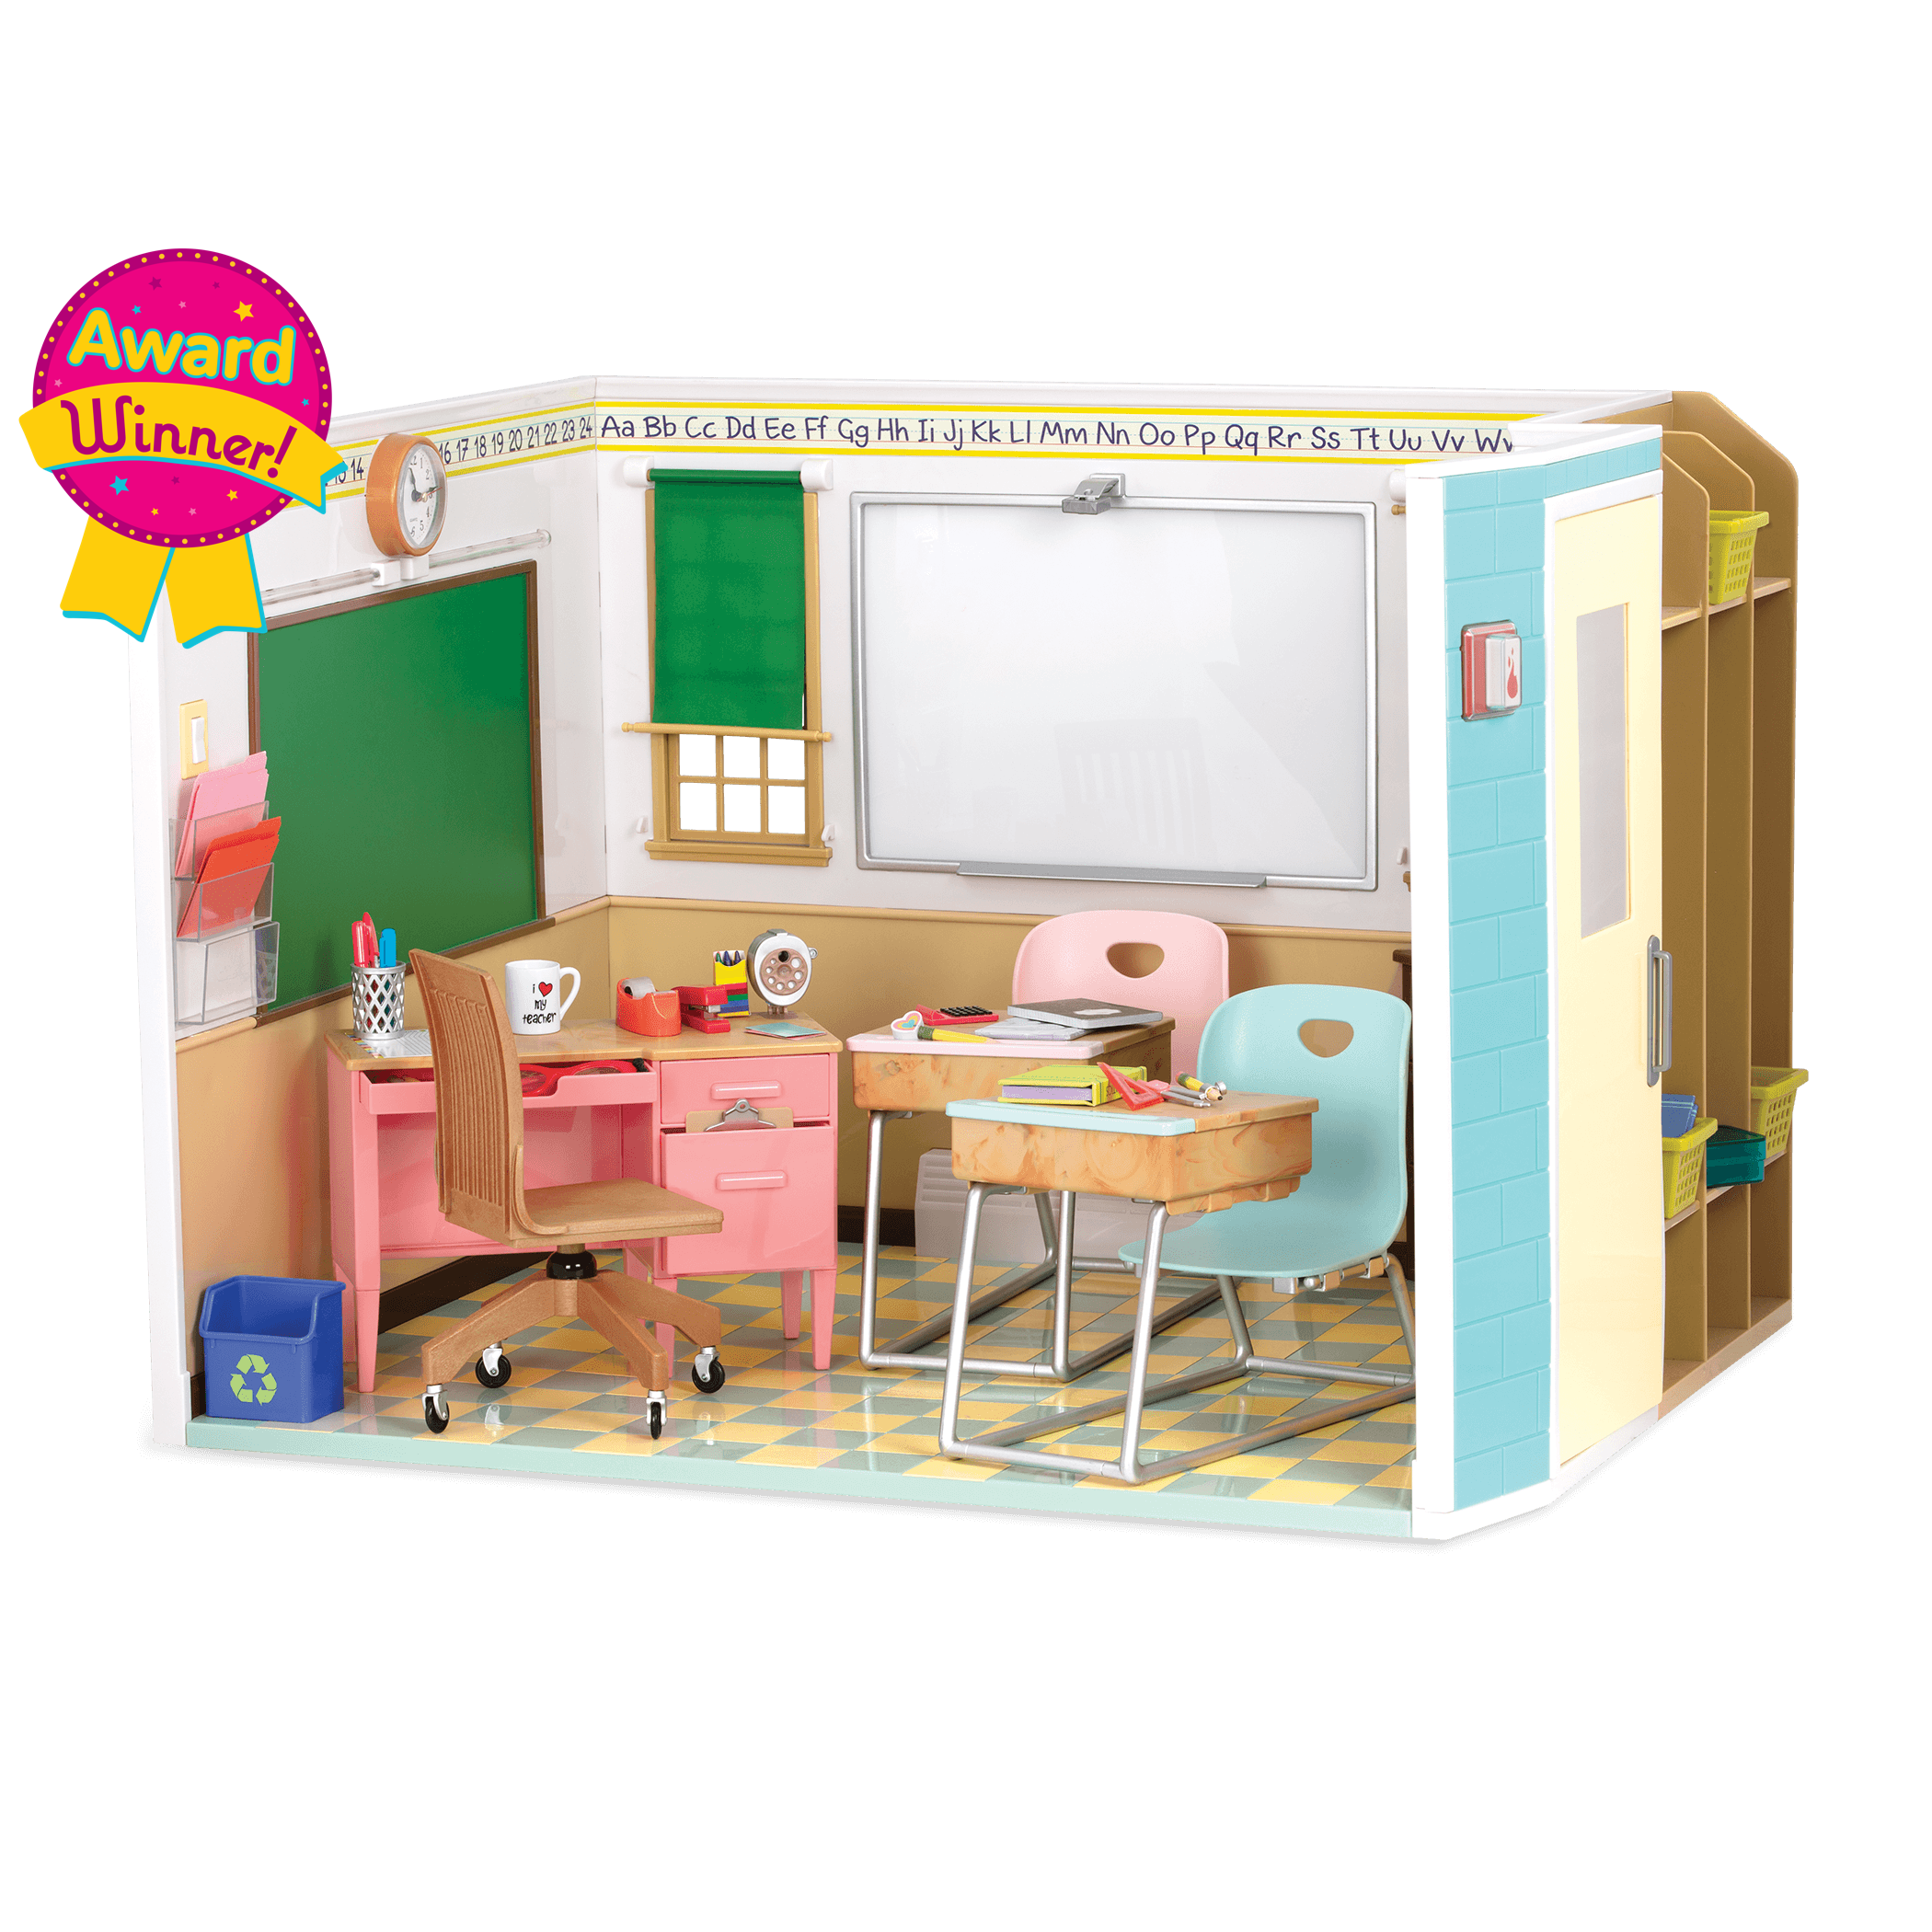 Awesome Academy school room playset for 18-inch dolls